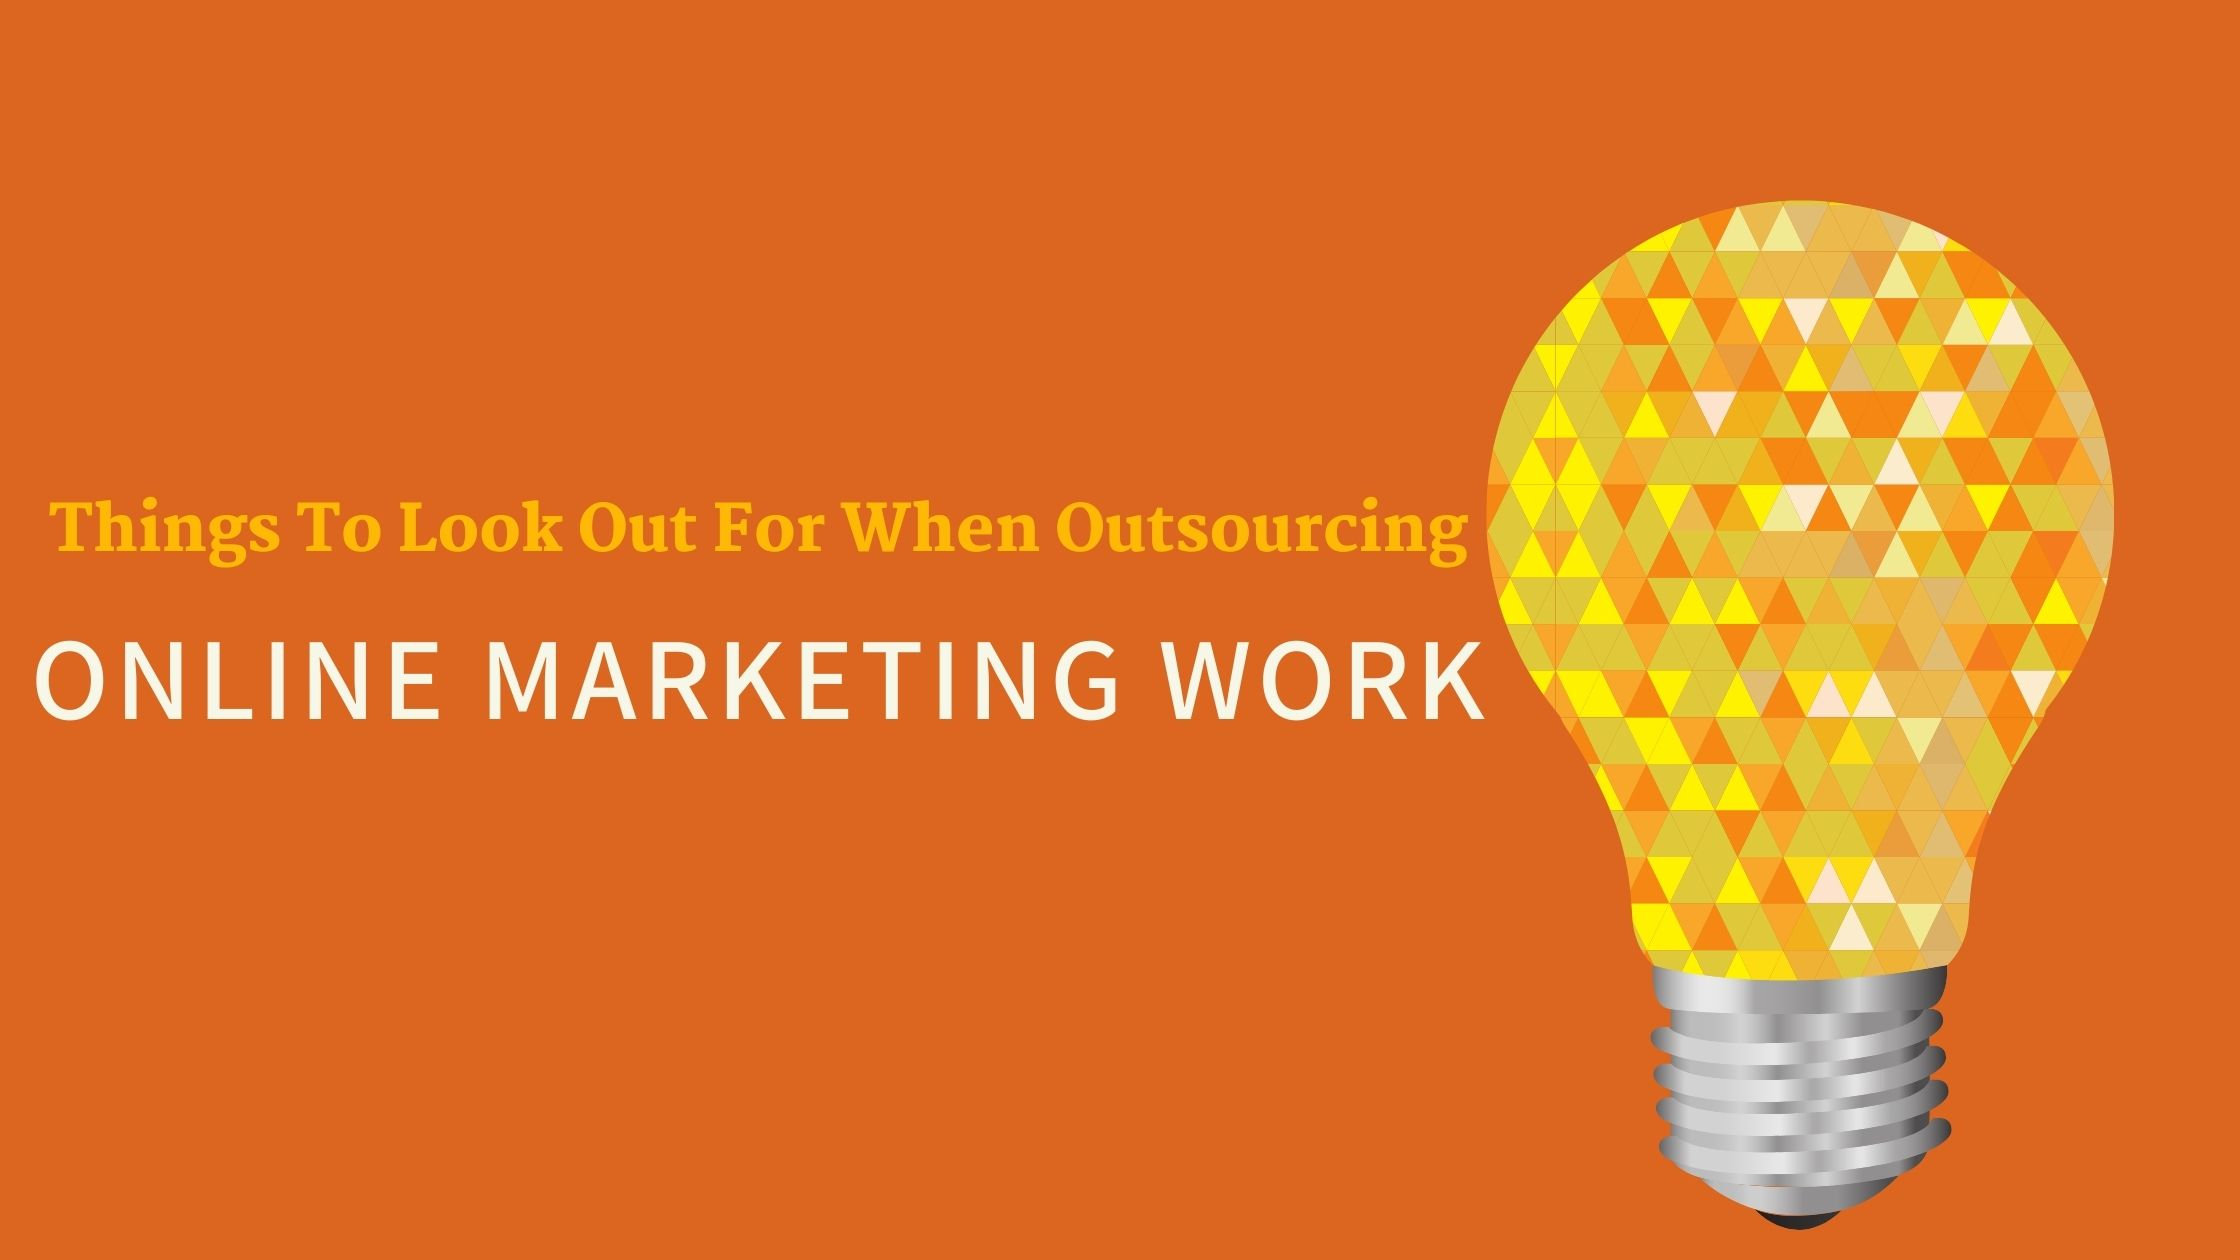 Things To Look Out For When Outsourcing Online Marketing Work